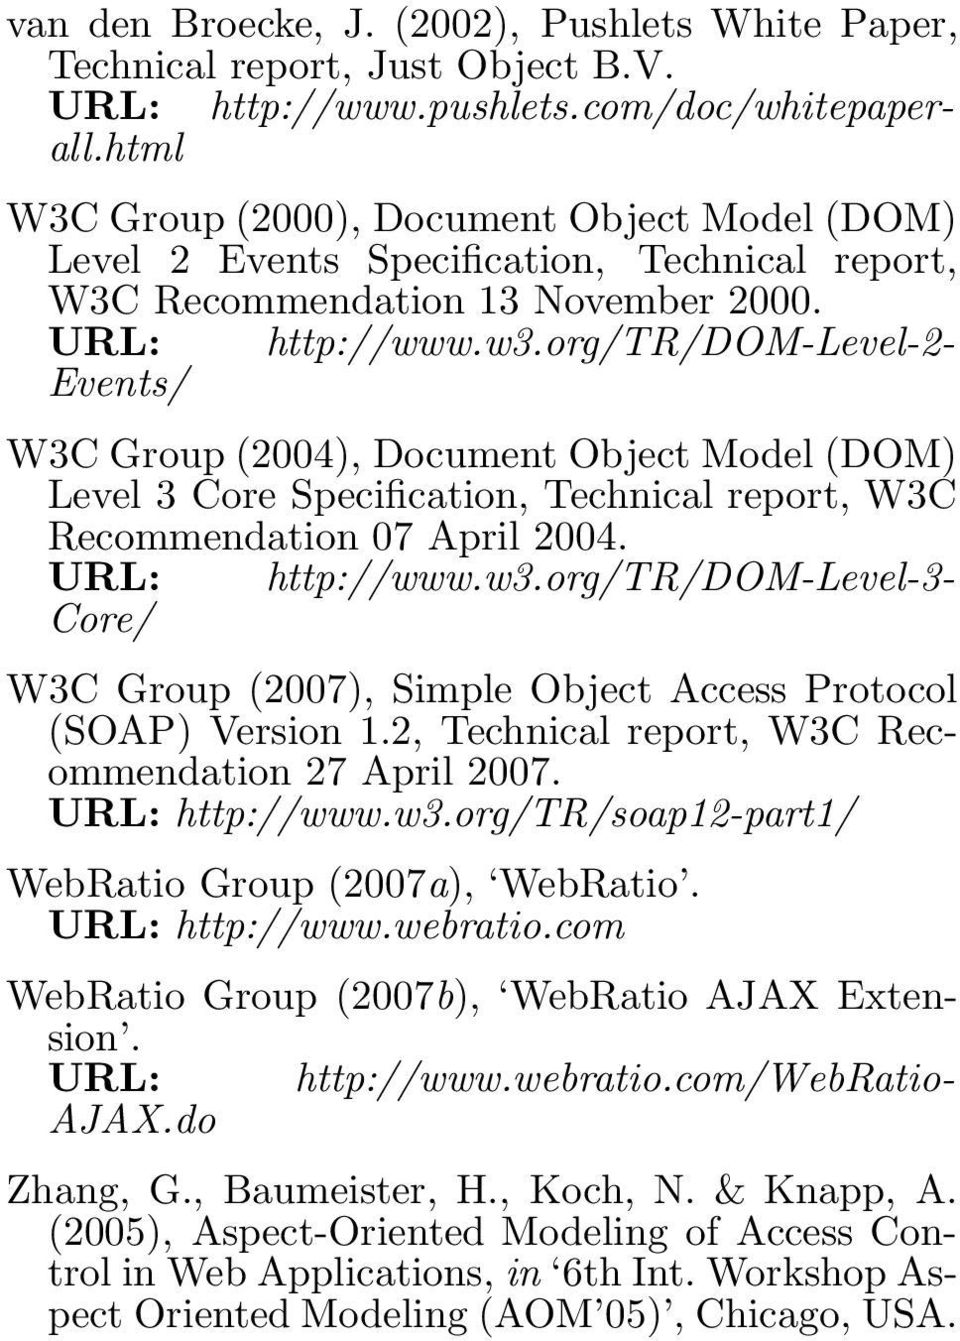 org/tr/dom-level-2- Events/ W3C Group (2004), Document Object Model (DOM) Level 3 Core Specification, Technical report, W3C Recommendation 07 April 2004. URL: http://www.w3.